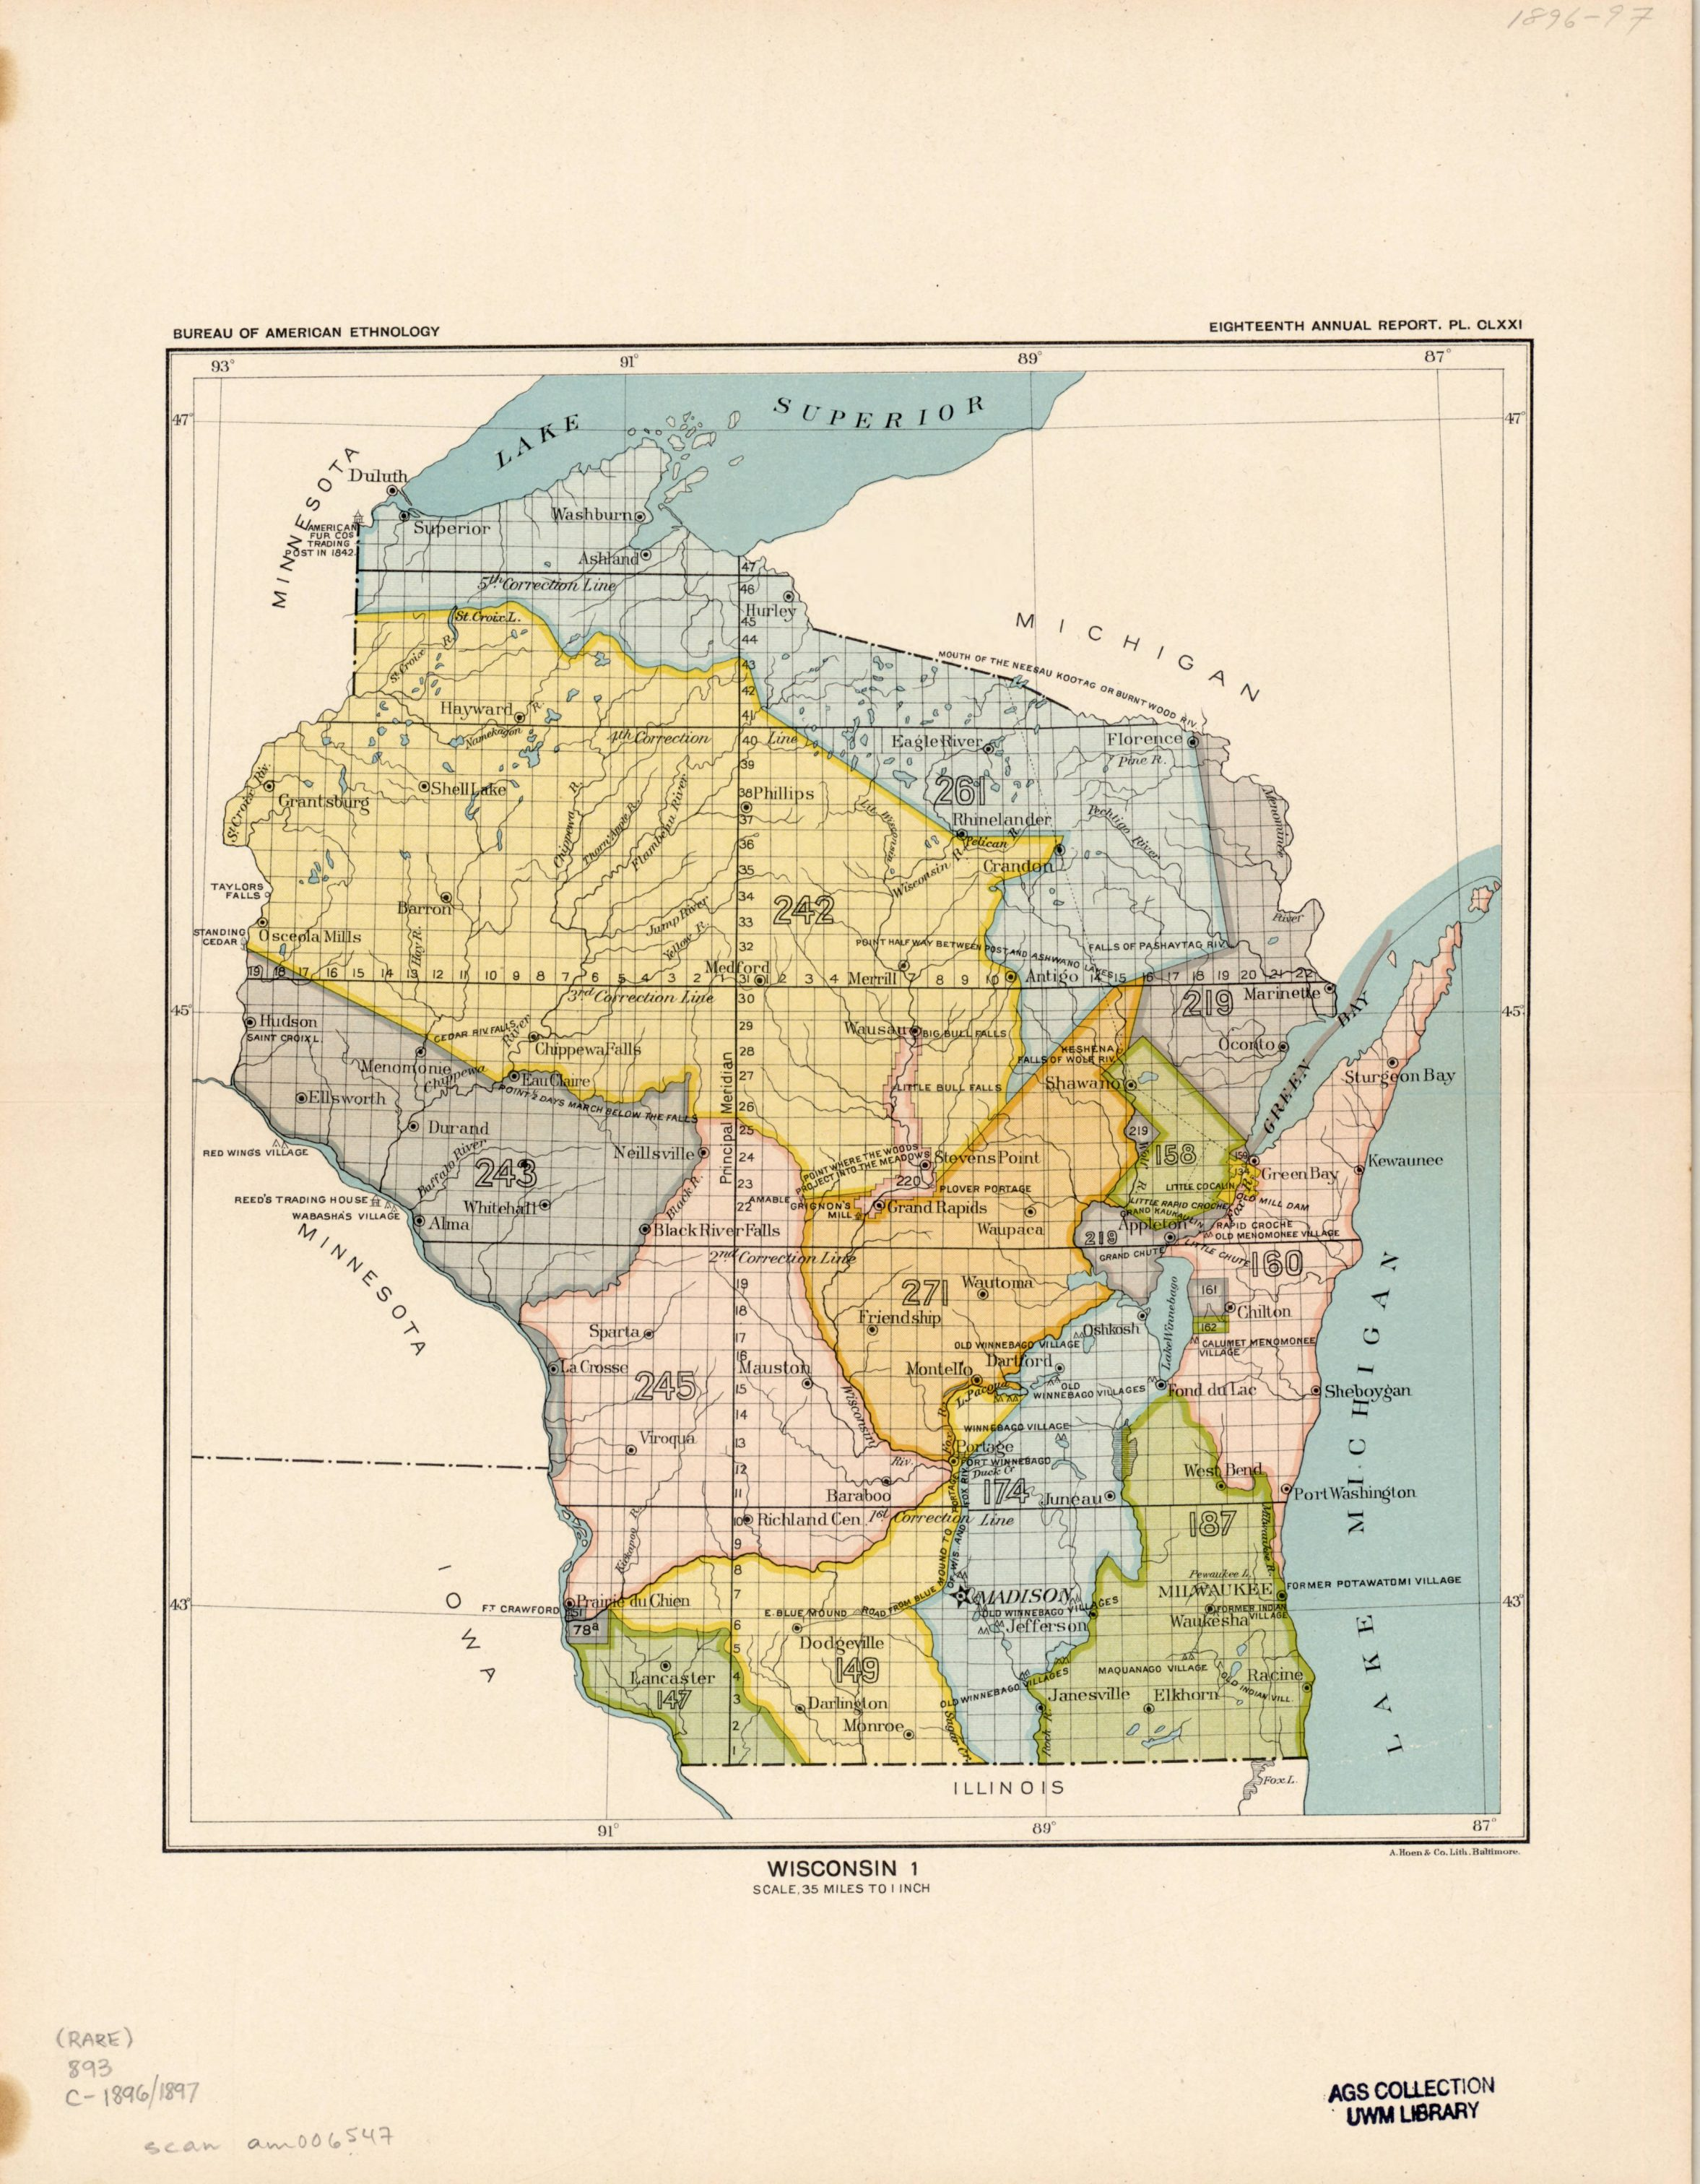 Before Milwaukee became a city, the western shore of Lake Michigan and what we know now as Southeast Wisconsin was Indian Country.  In 1829, the Menominee Indians ceded the land in the pink area to the U.S.  The Chippewa, Ottawa, and Potawatomi ceded the land in green area  to the U.S. in 1832.  Together, these land cessions reshaped the geography of the southwestern shore of Lake Michigan, and made the area we now call the Milwaukee metropolitan area United States land.